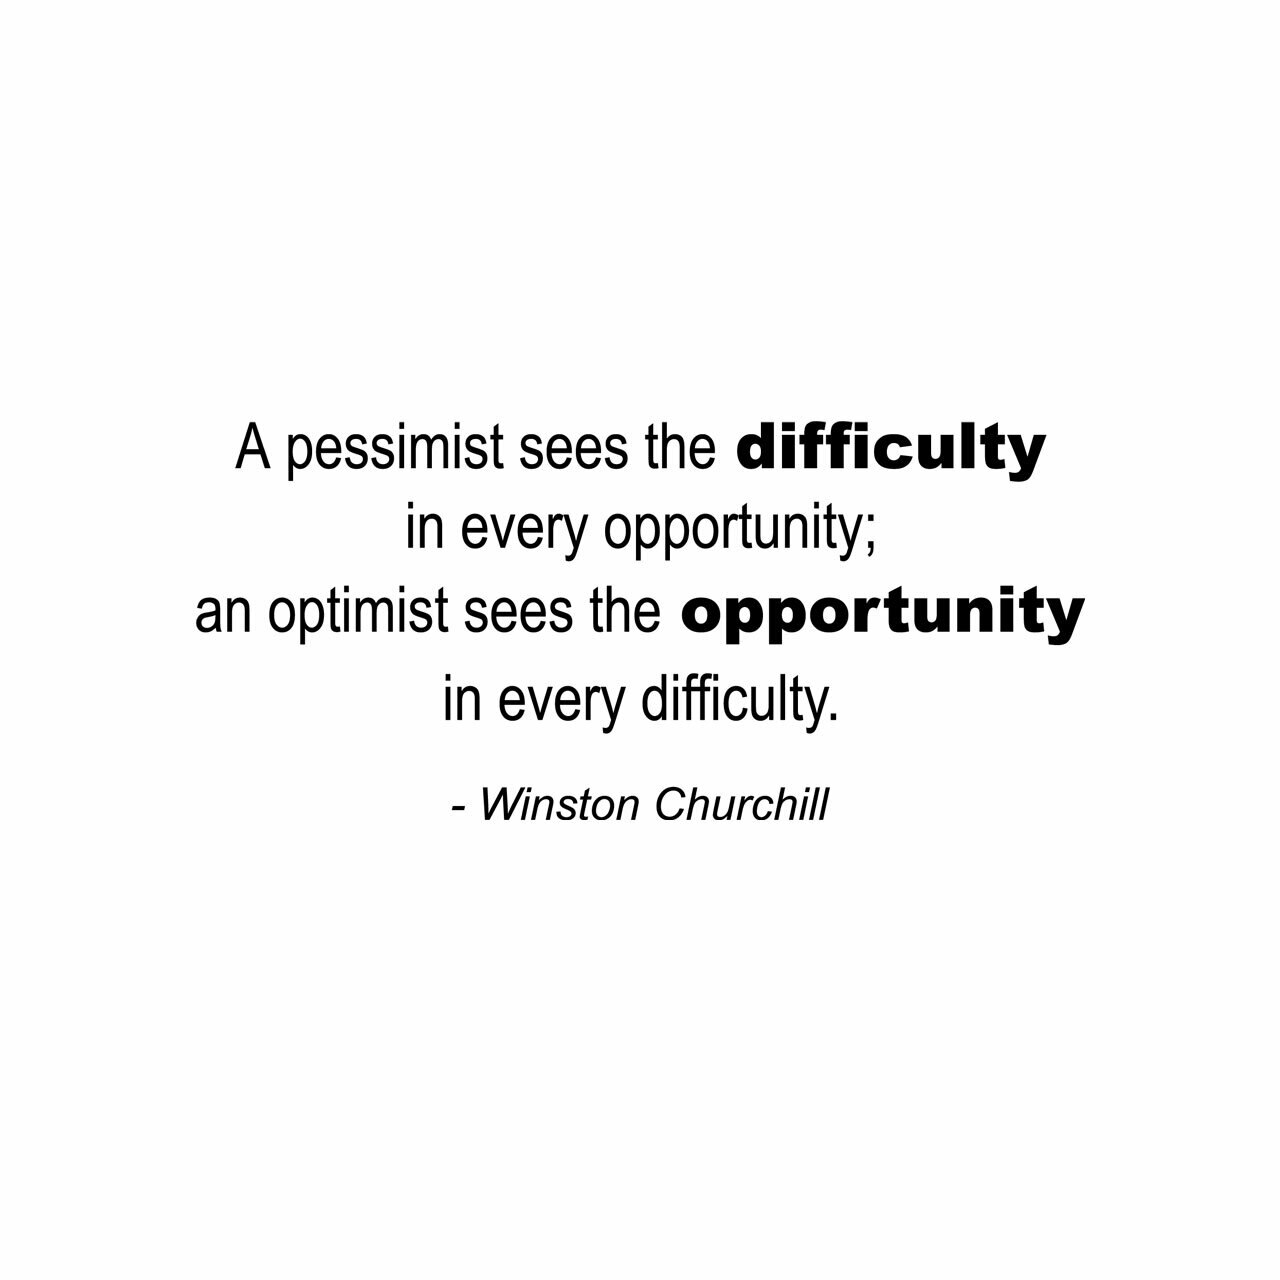 A pessimist sees the difficulty in every opportunity. An optimist see the opportunity in every difficulty. -Winston Churchill written on multiple lines in black on a white background